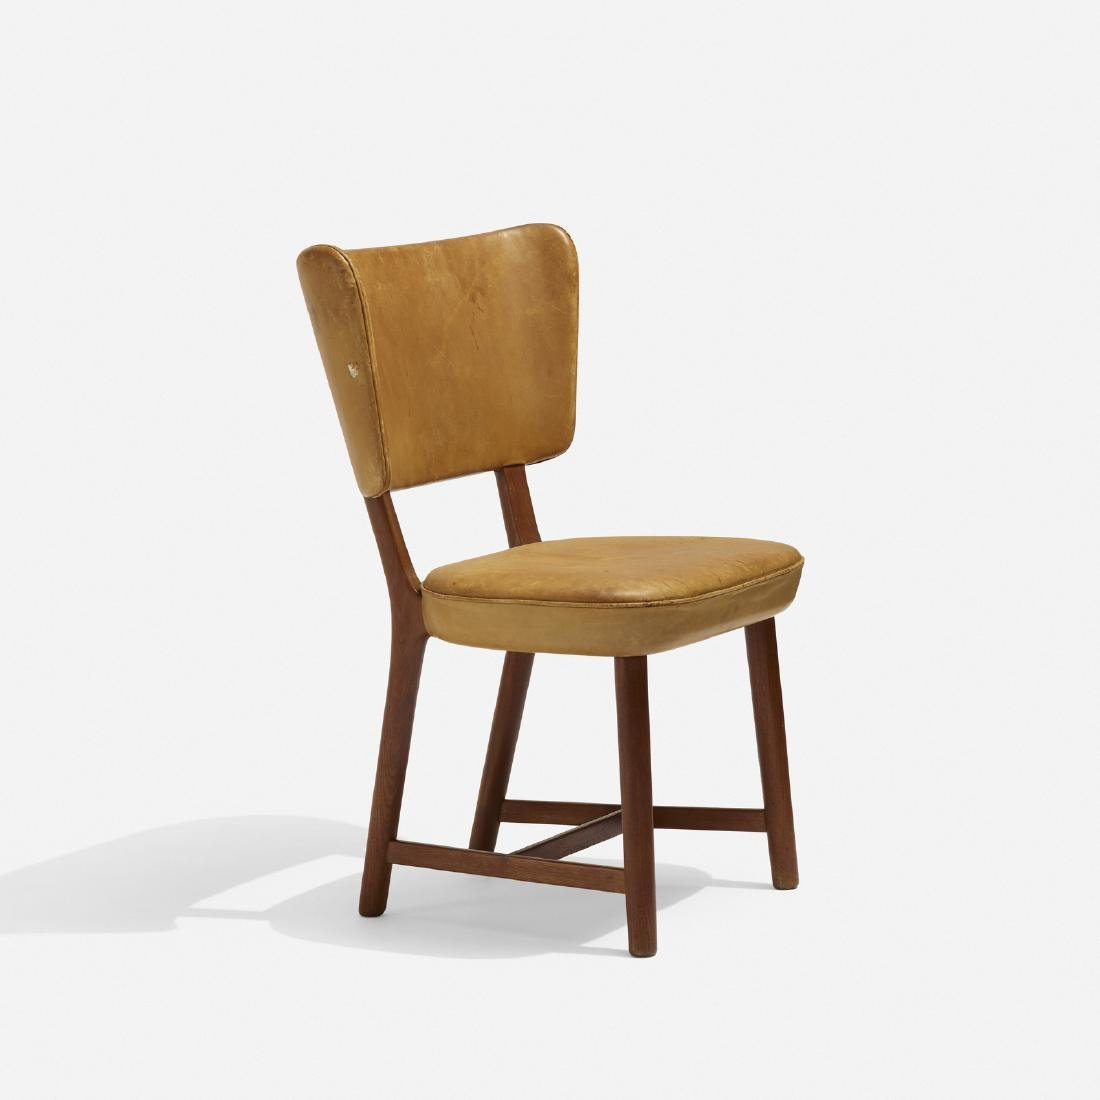 Tyge Hvass, chair